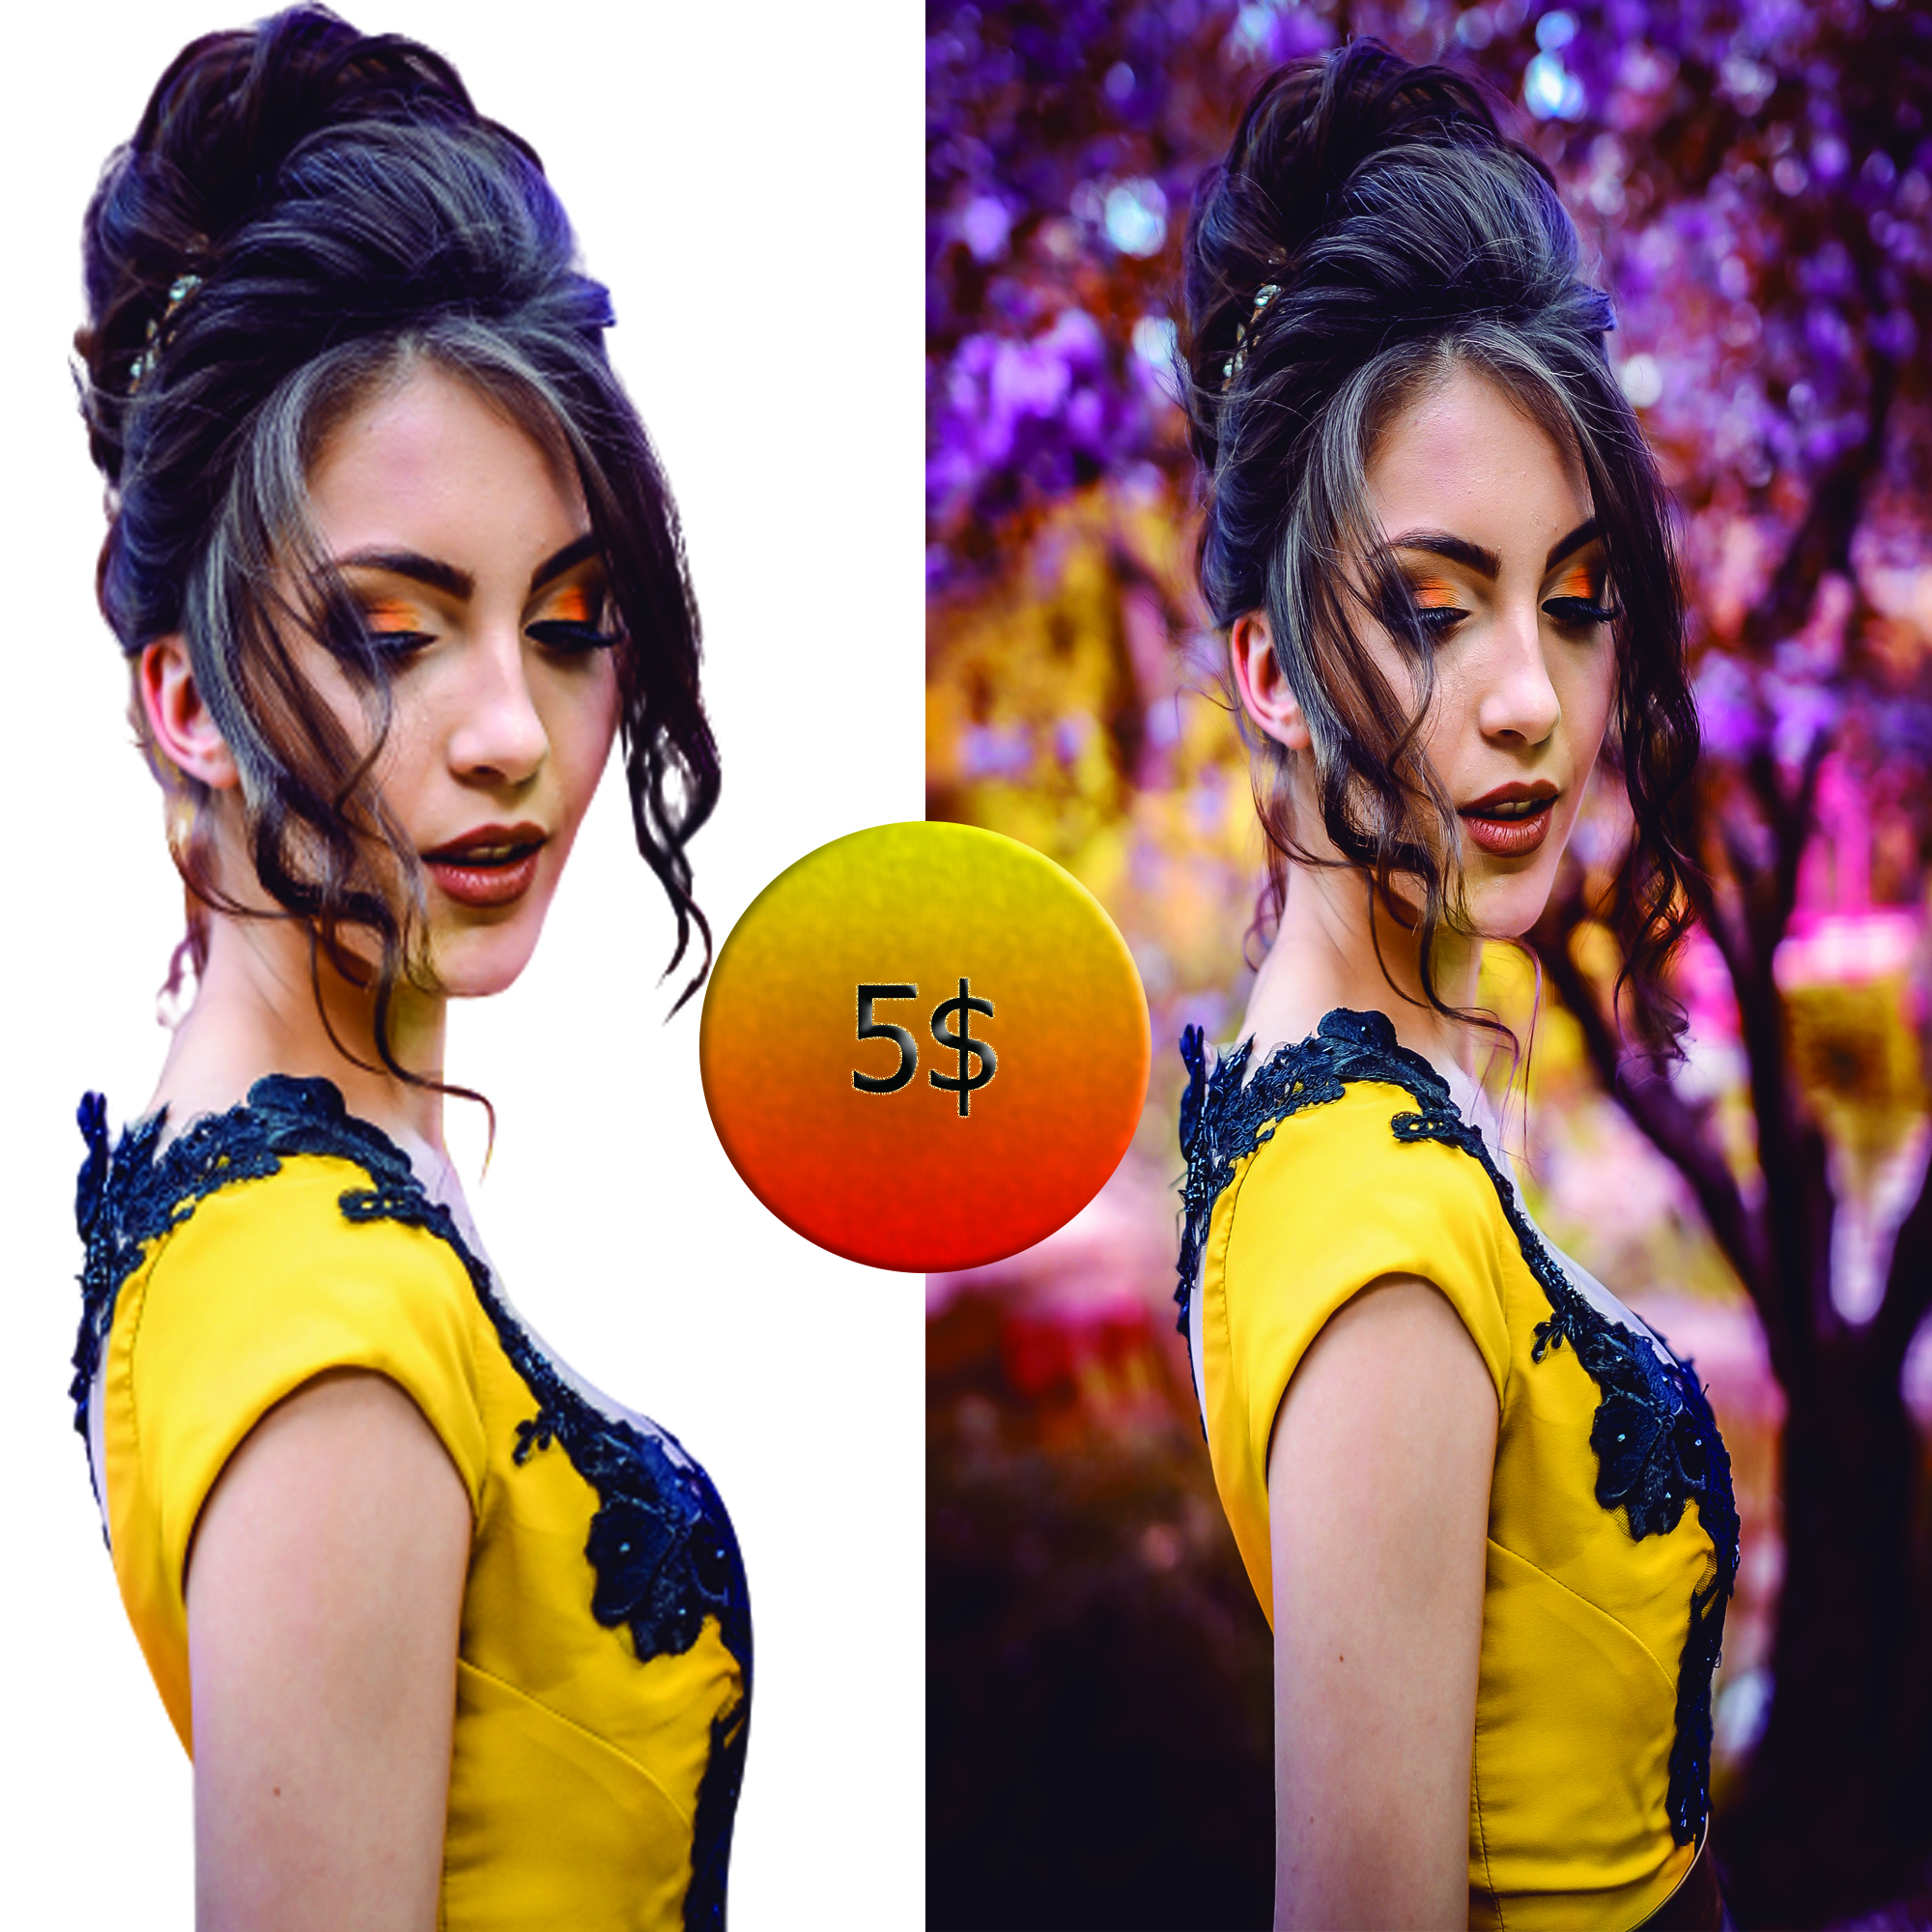 I will do professional background removing 10 images.